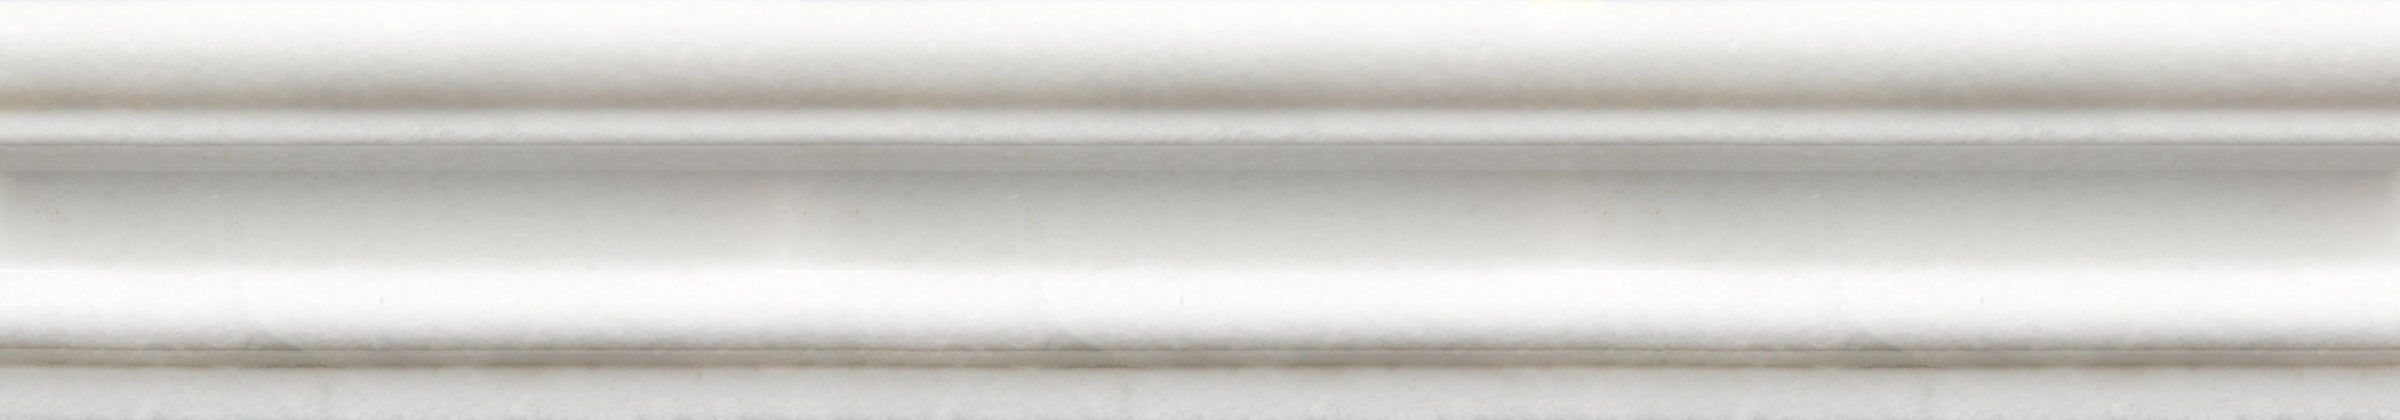 Opus 3 Thassos Marble Molding product photo